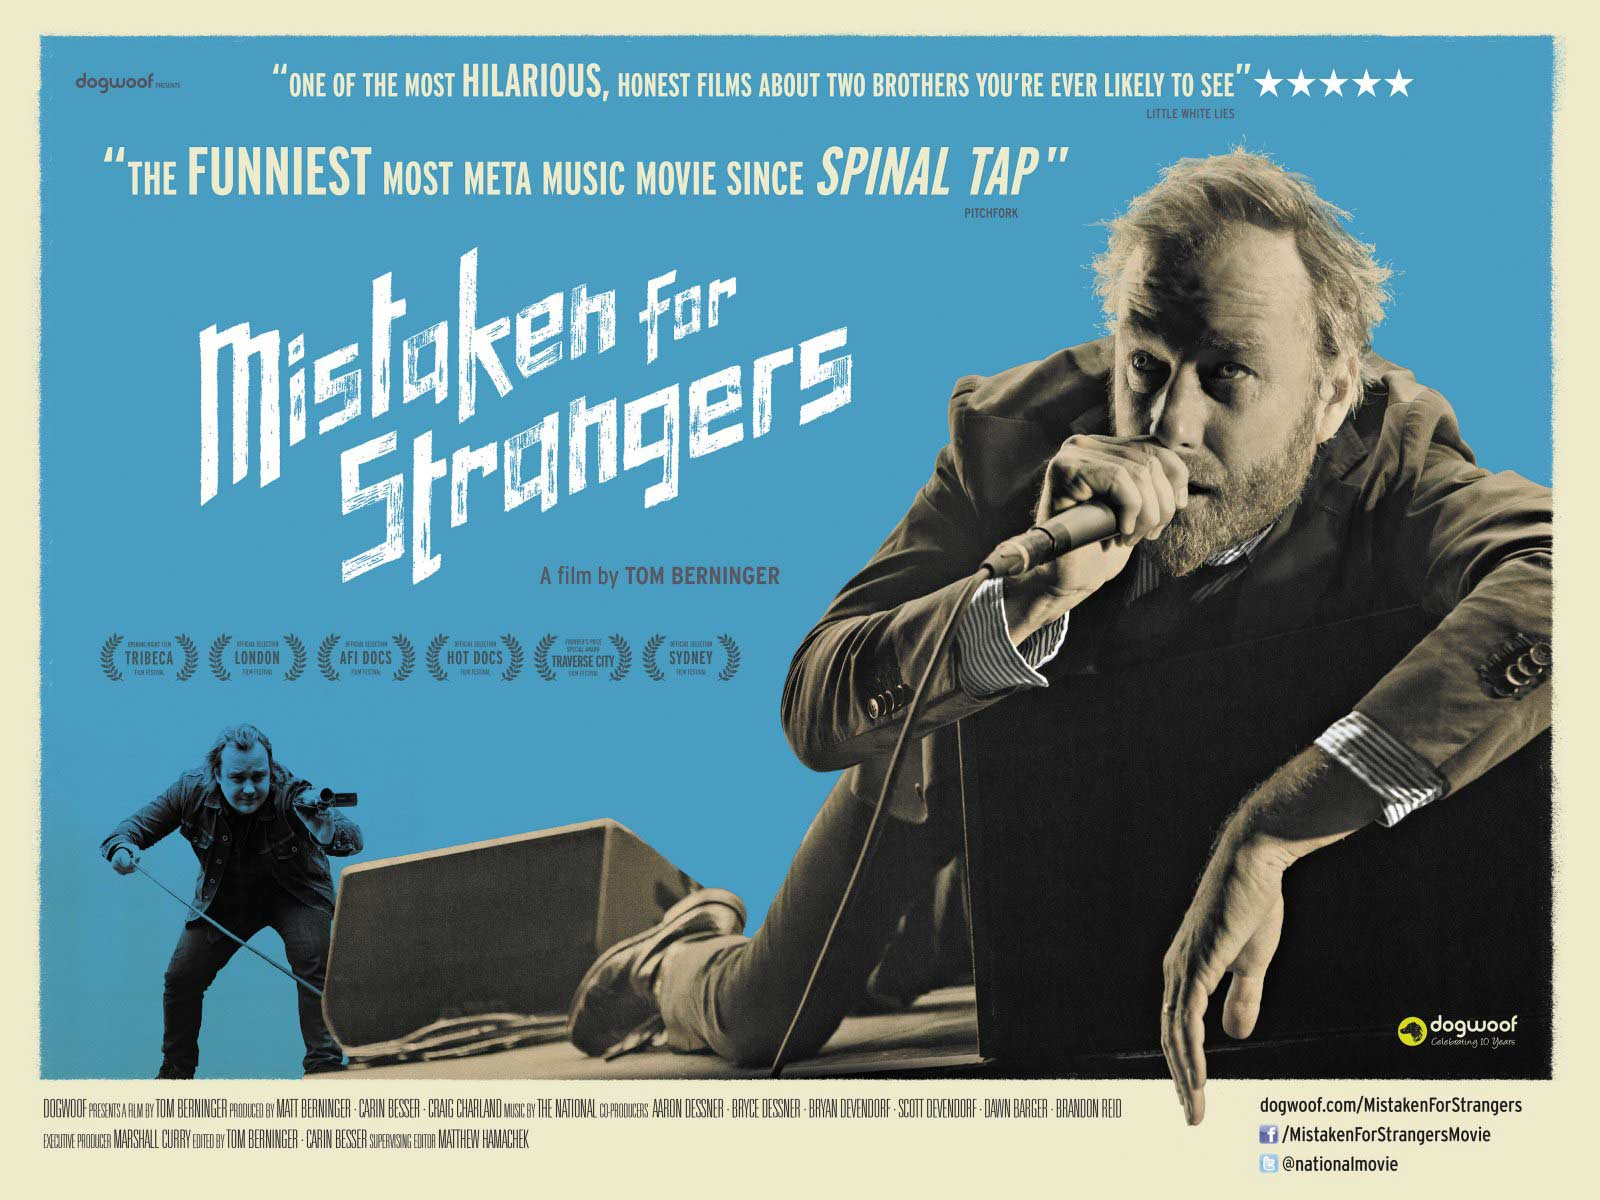 Mistaken_for_Strangers_Dogwoof_documentaryquad_1600_1200_85